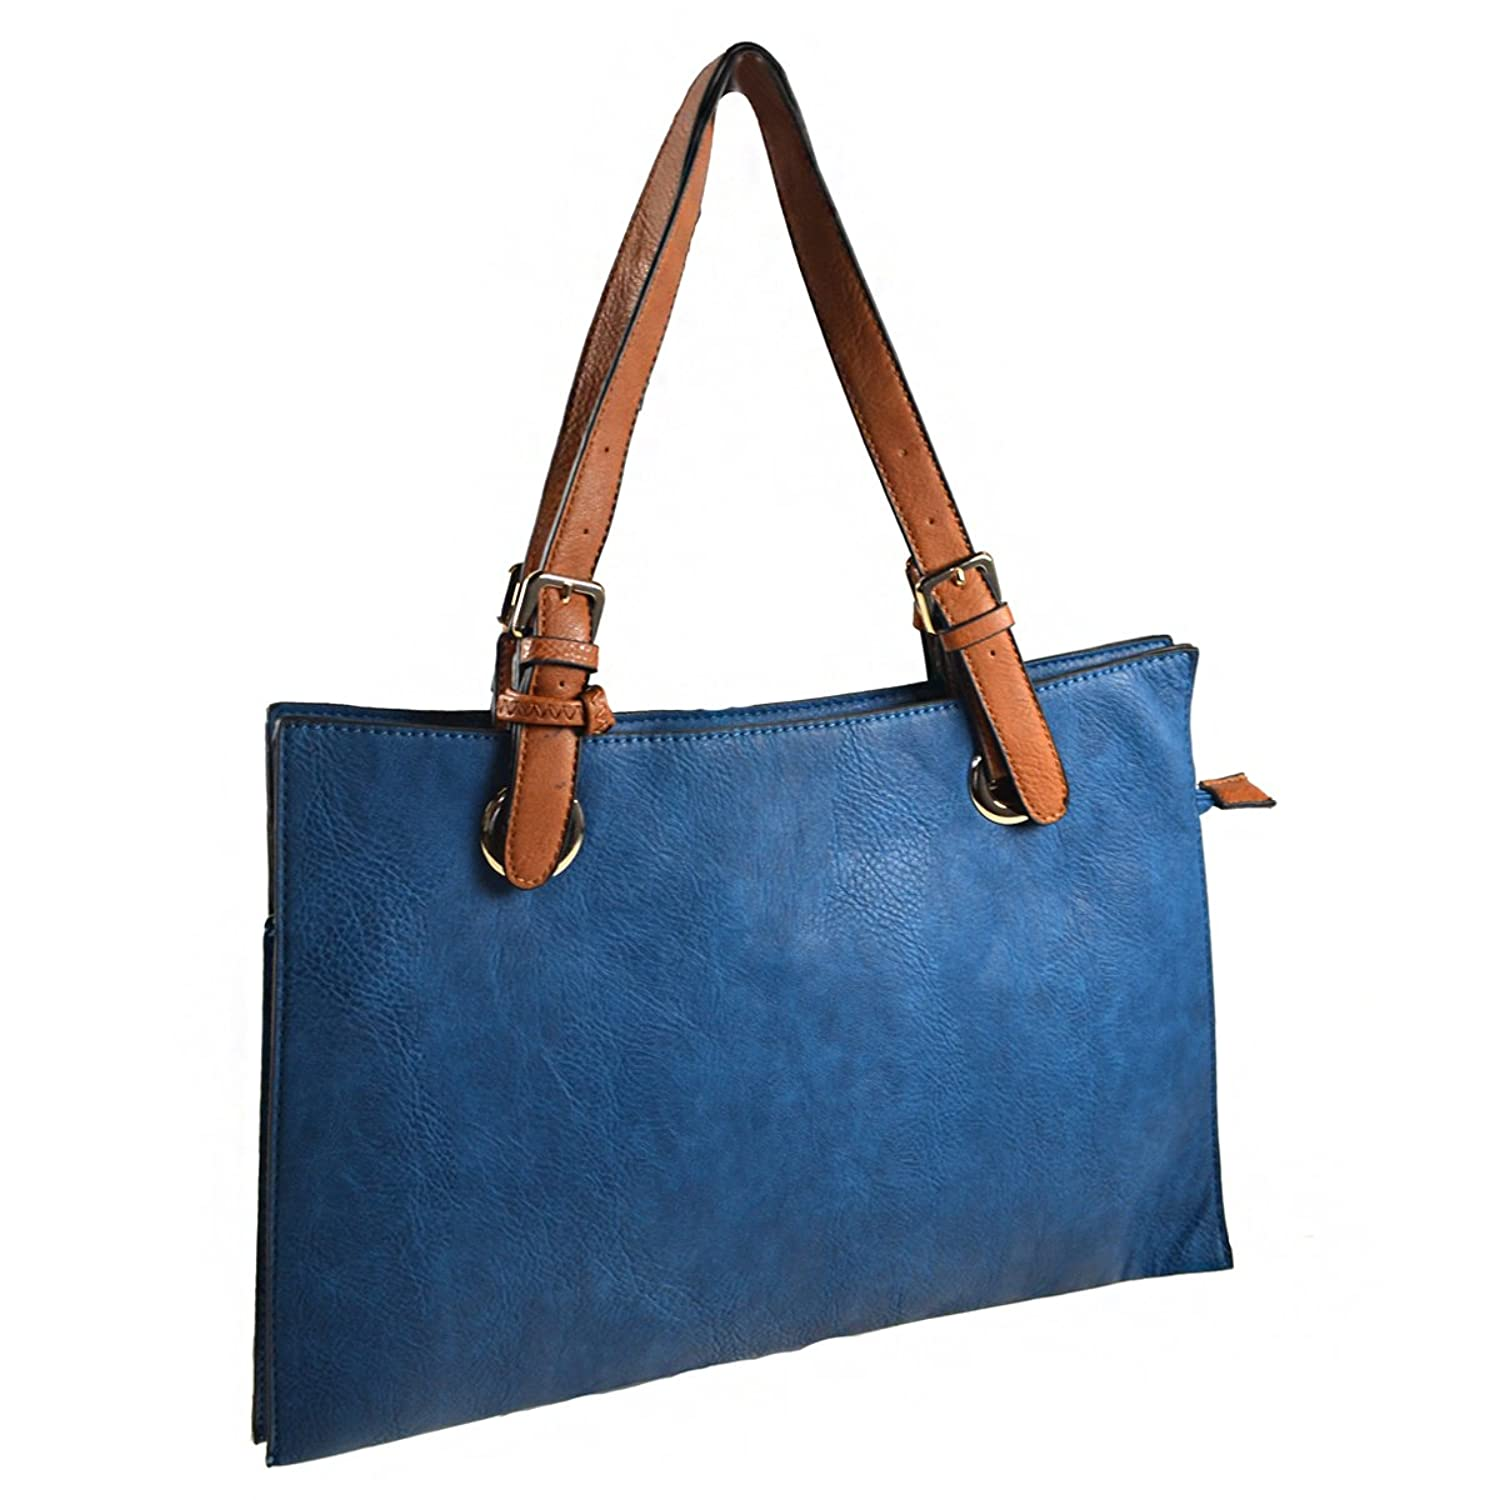 Textured Tote and Pouch Handbag